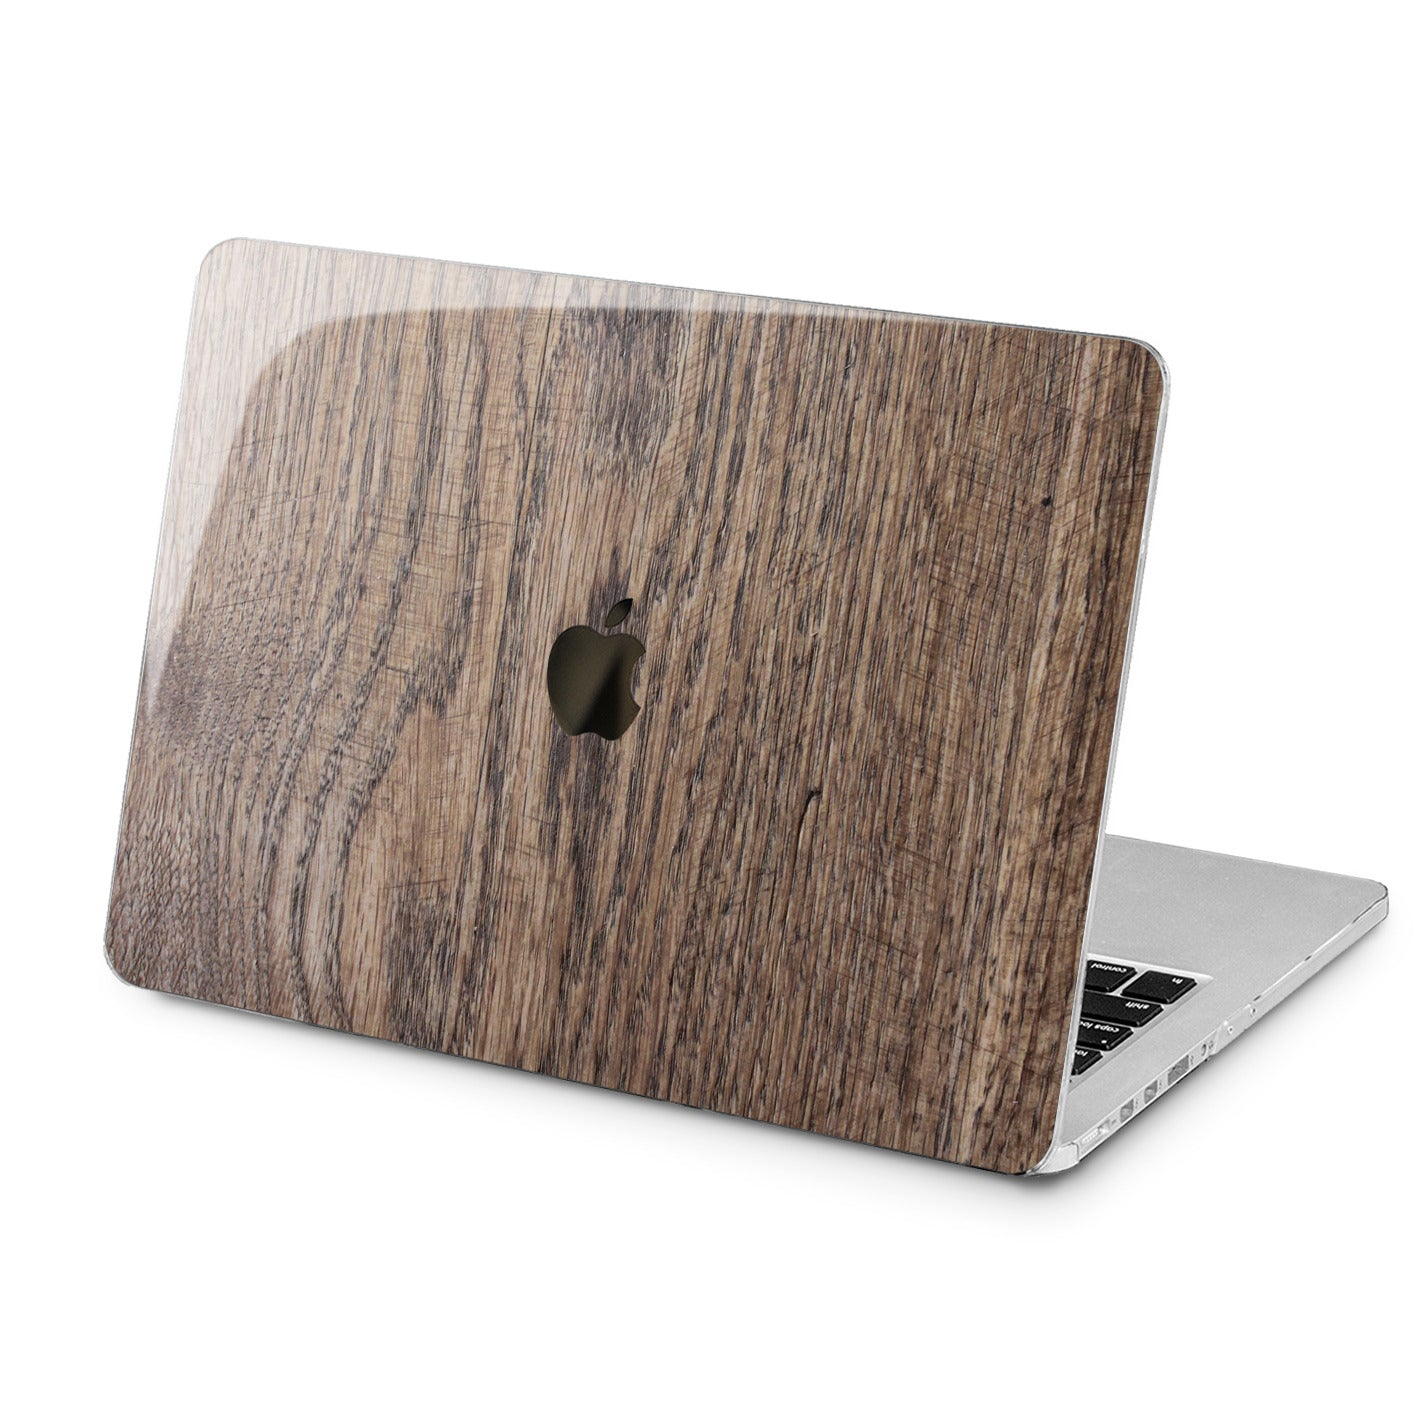 Lex Altern Lex Altern Brown Polished Wood Case for your Laptop Apple Macbook.